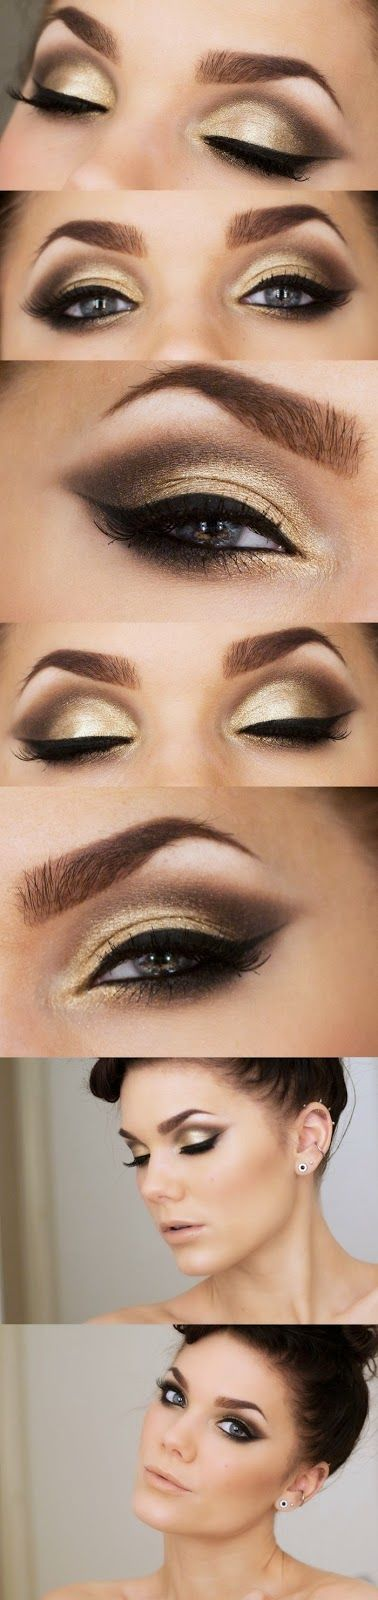 5 Elegant Gold Smoky Eye Makeup Ideas